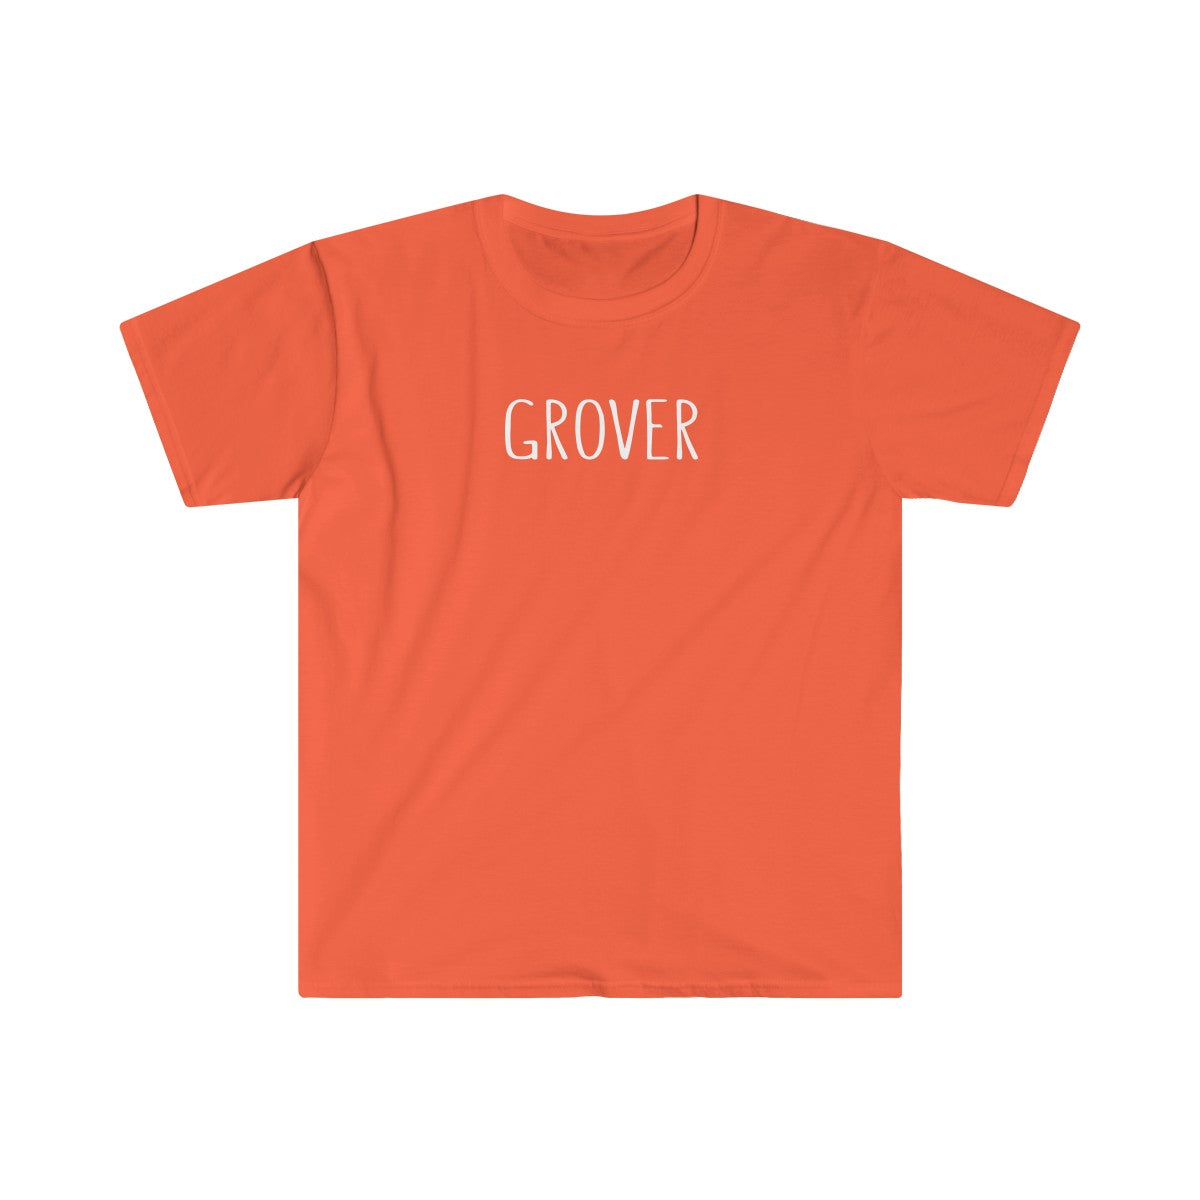 Grover Men's Fitted Short Sleeve Tee